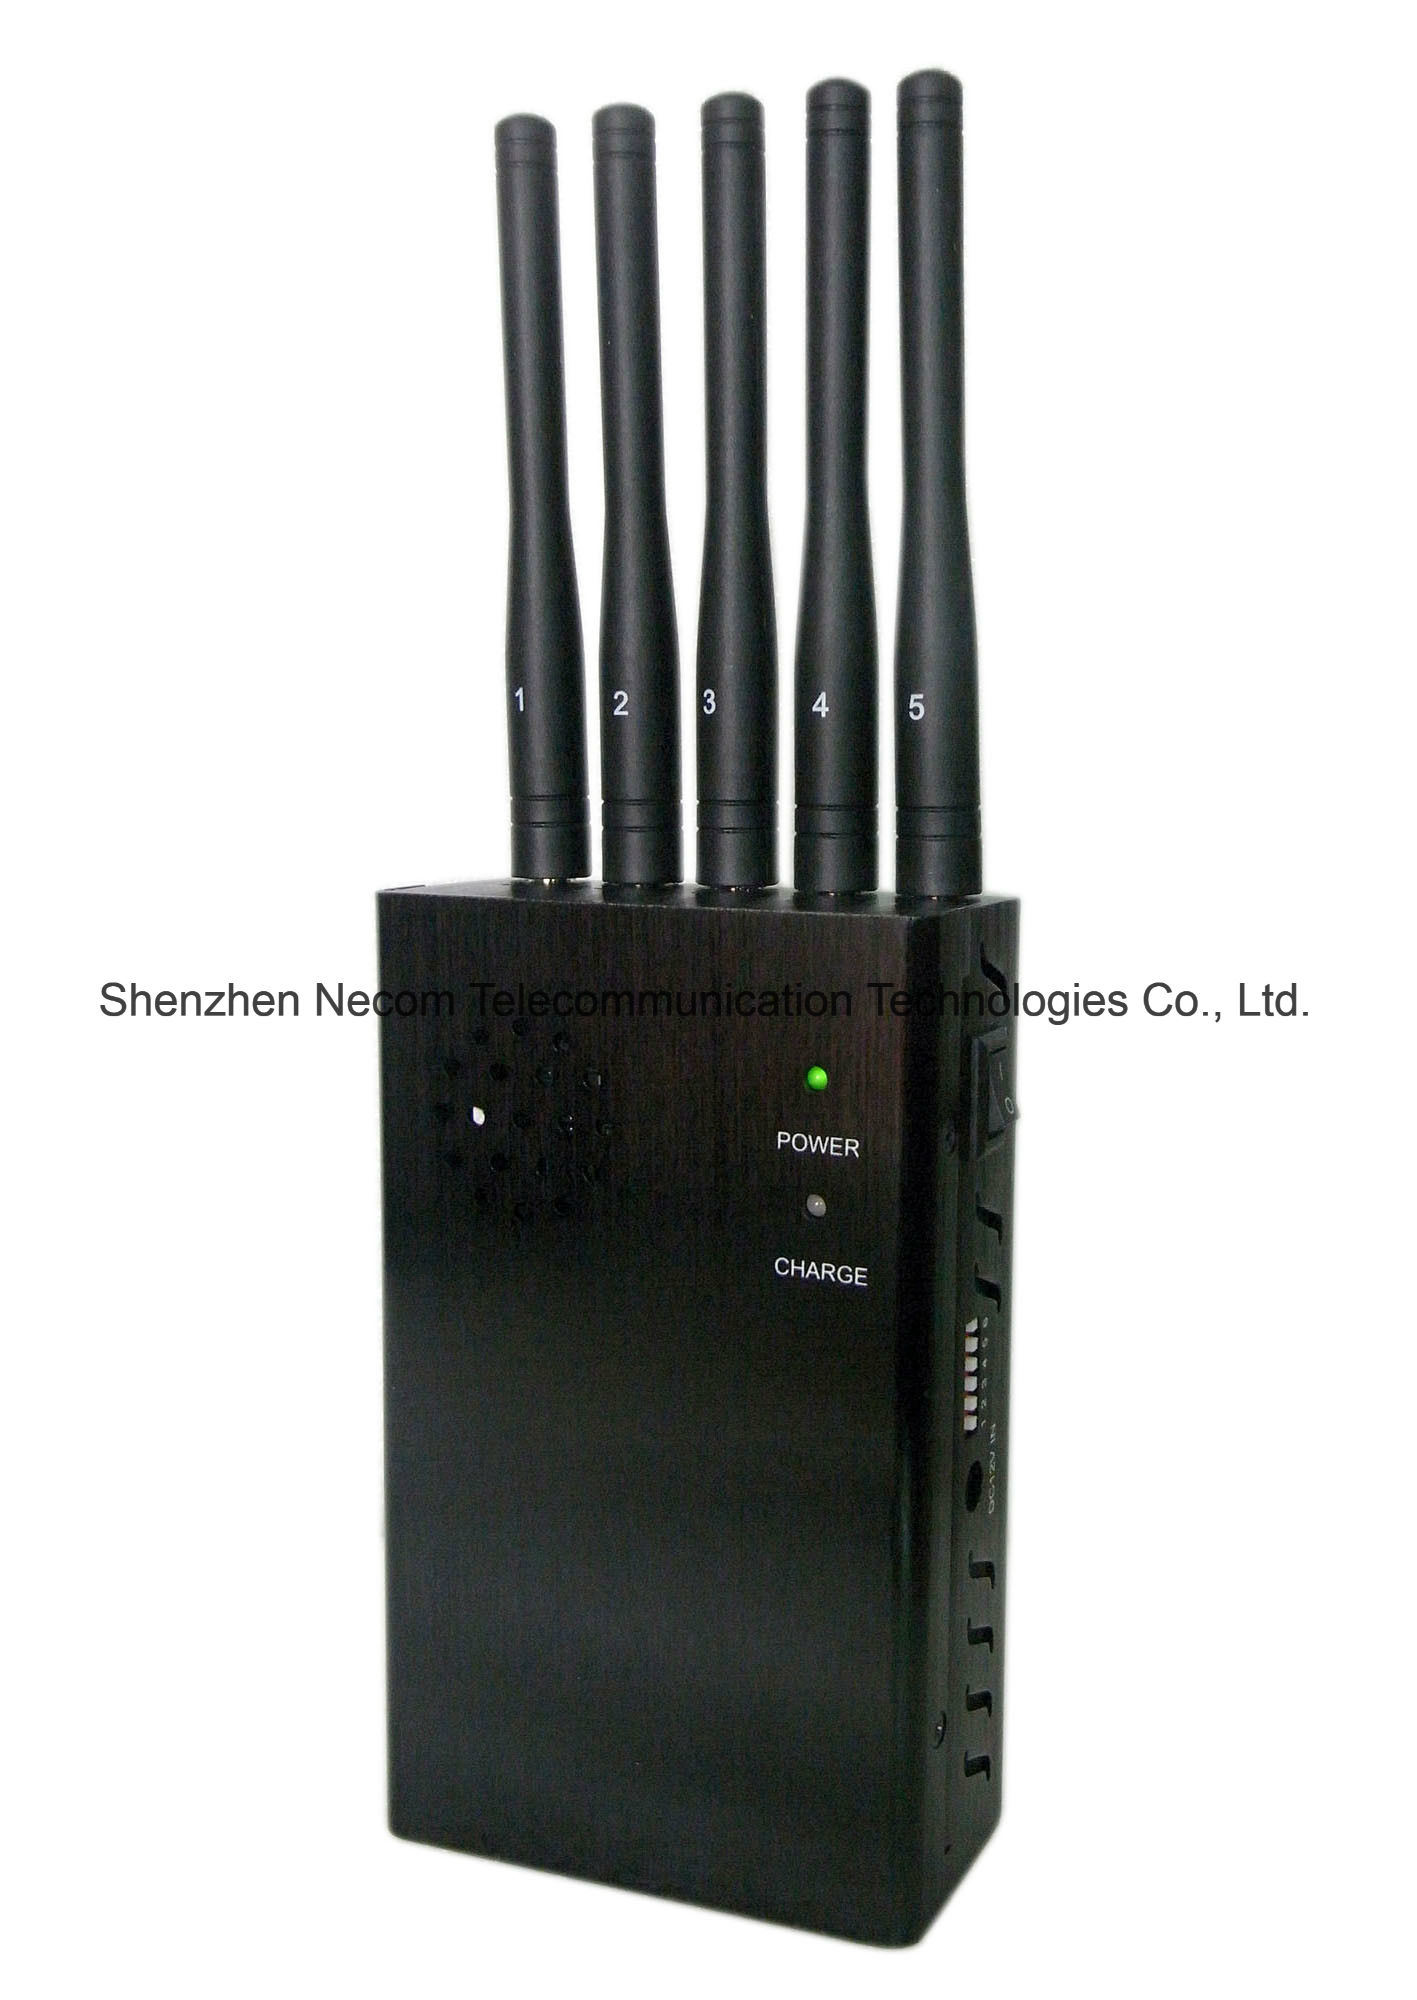 330 mhz jammer - China 5 Antenna Big Portable Cell Jammer, Portable GPS Jammer, Portable WiFi Jammer, Jamming 2g+3G+4G+Gpsl1 - China 5 Band Signal Blockers, Five Antennas Jammers